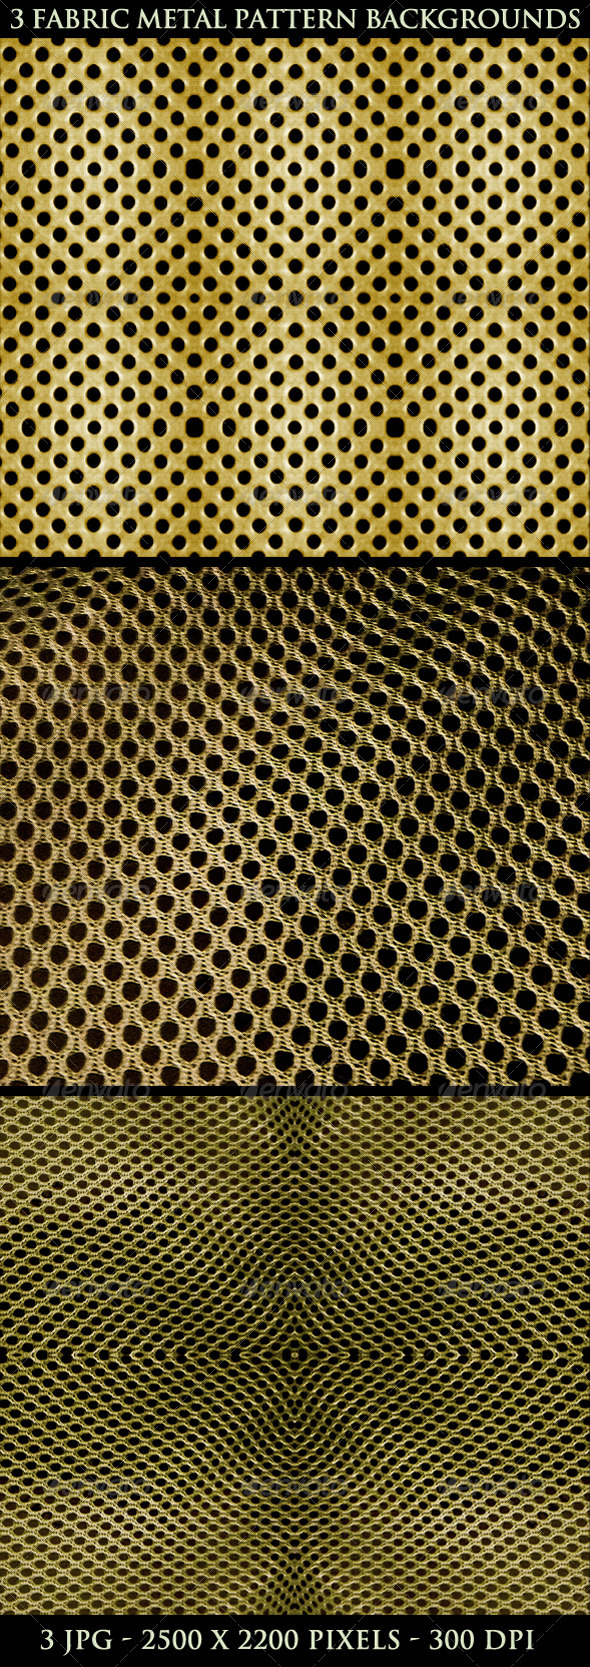 3 Fabric Metal Pattern Background - Patterns Backgrounds